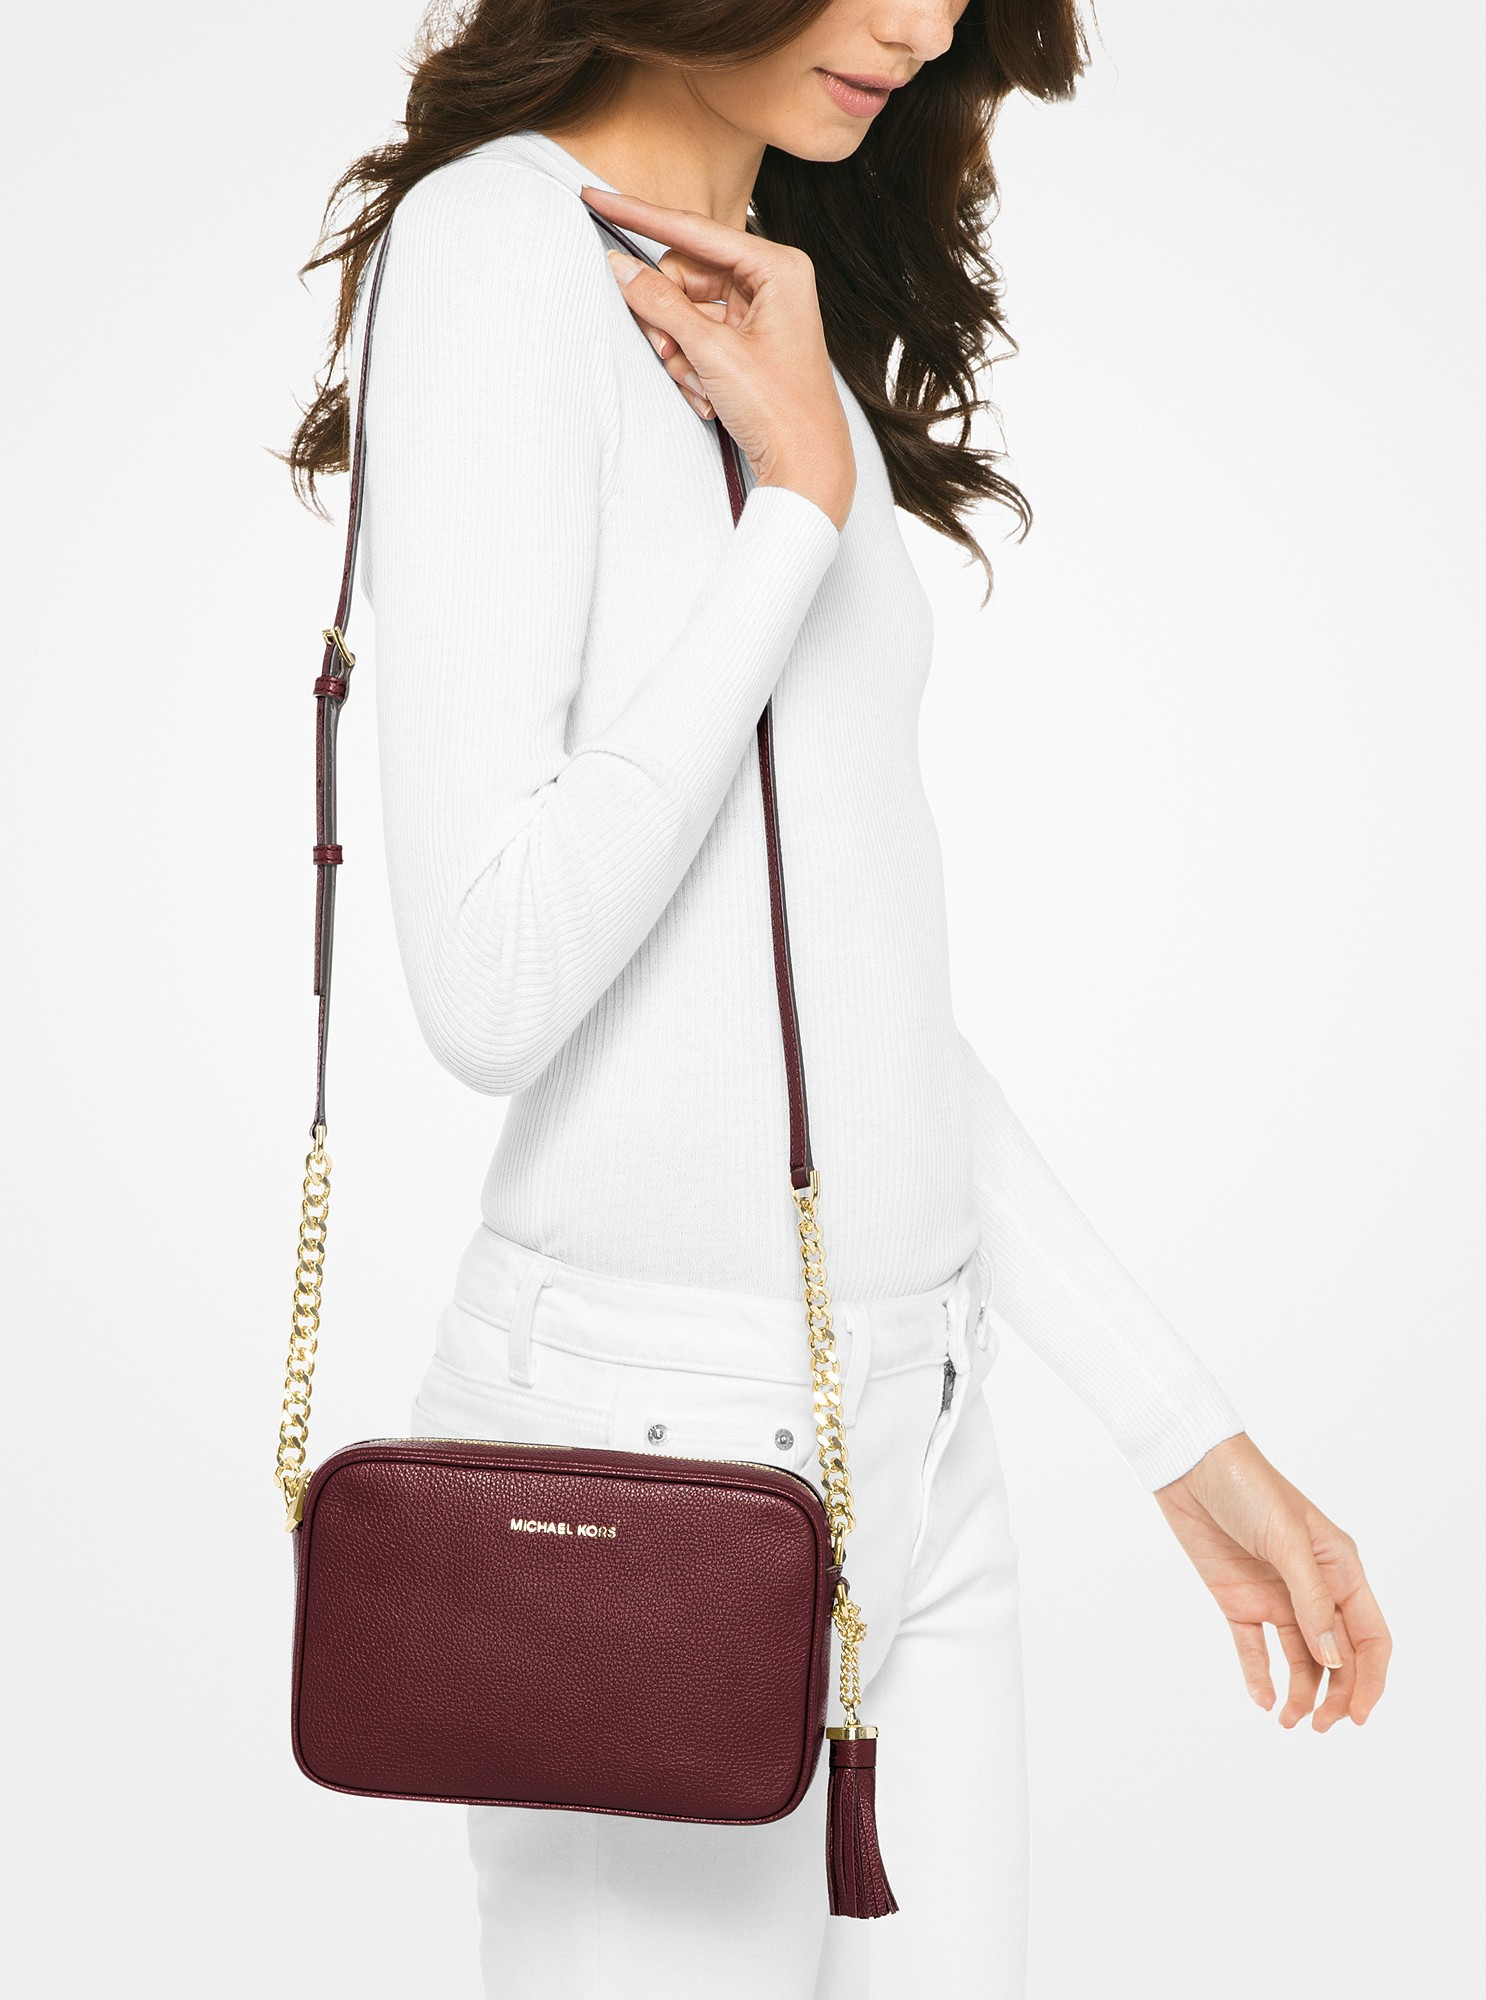 352353a0dda3 Michael Kors Ginny Leather Crossbody - Oxblood | Products | Michael ...